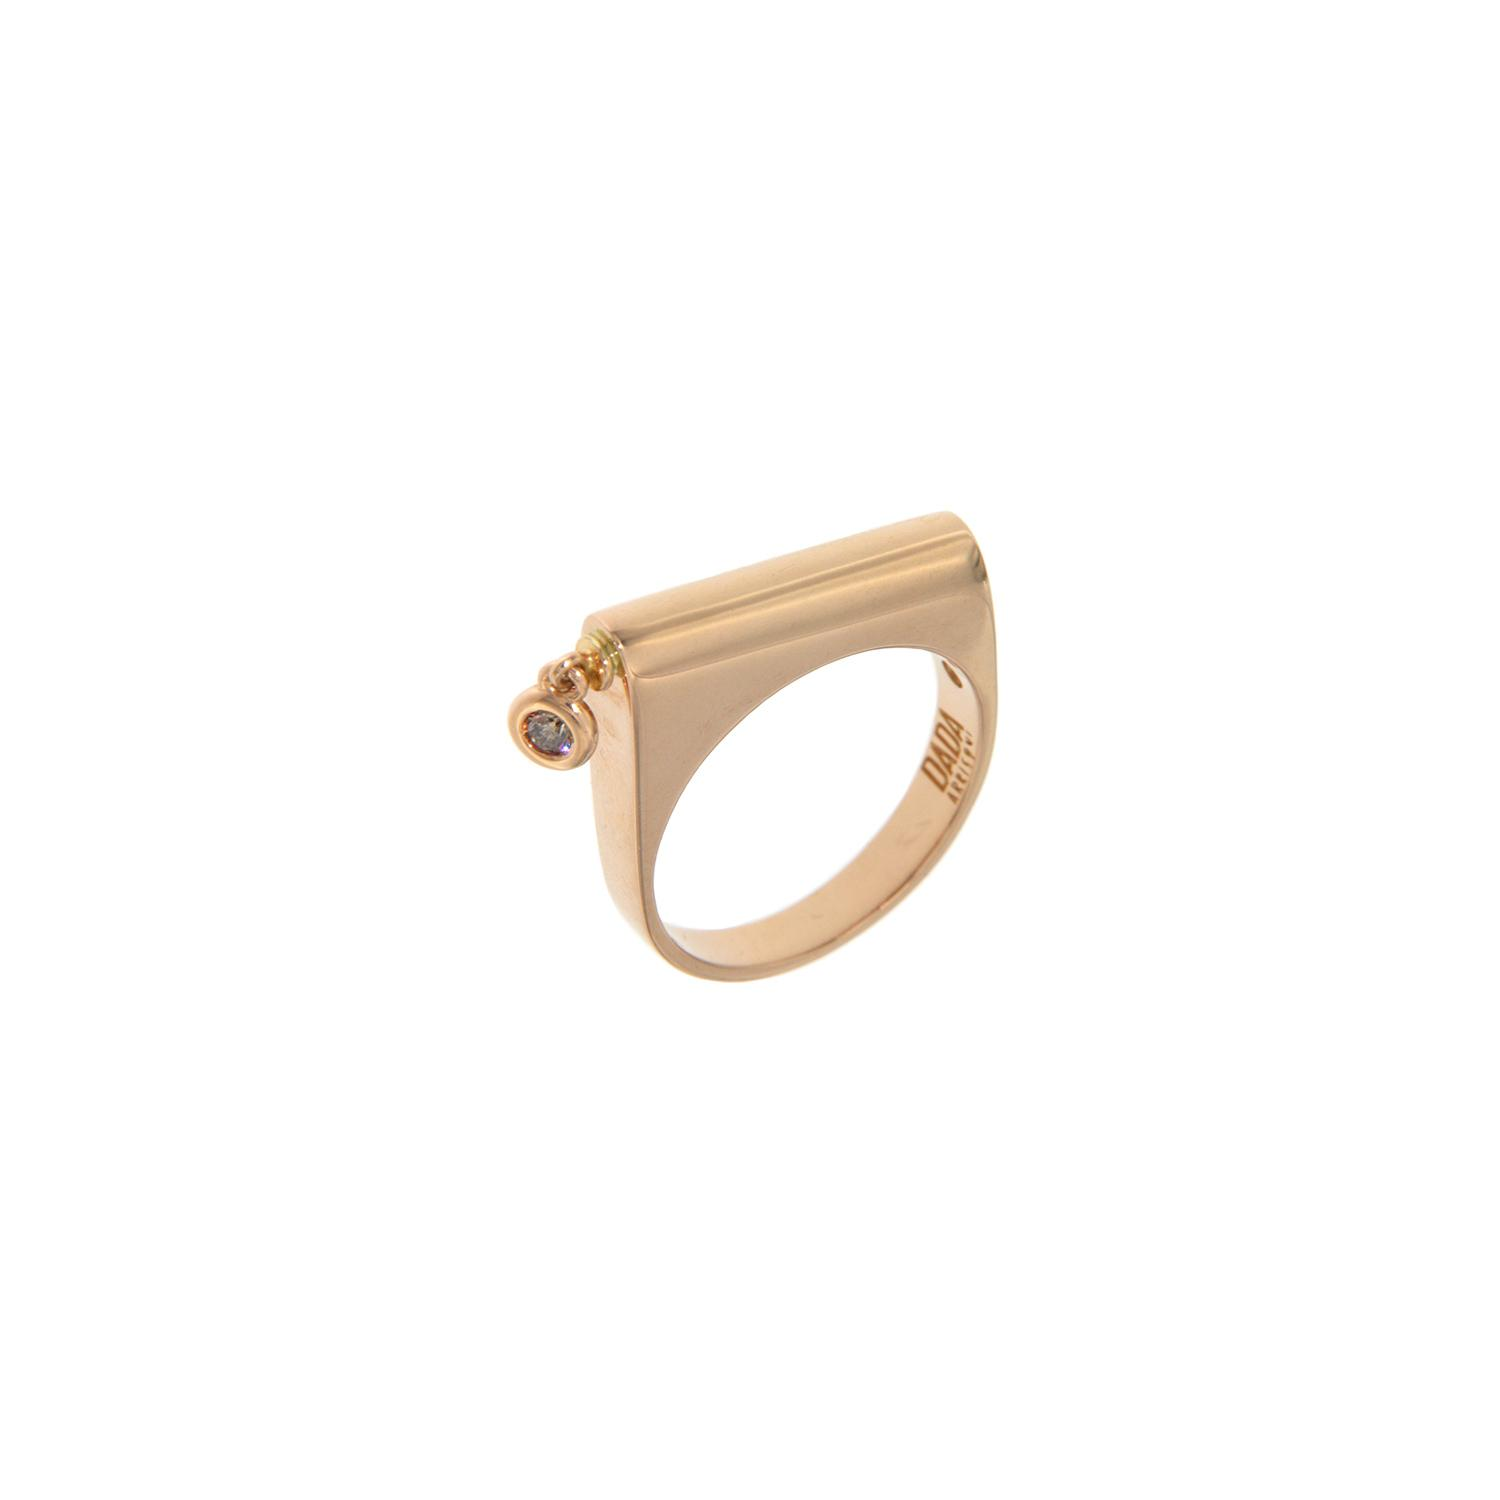 Anello in oro 18k e diamante